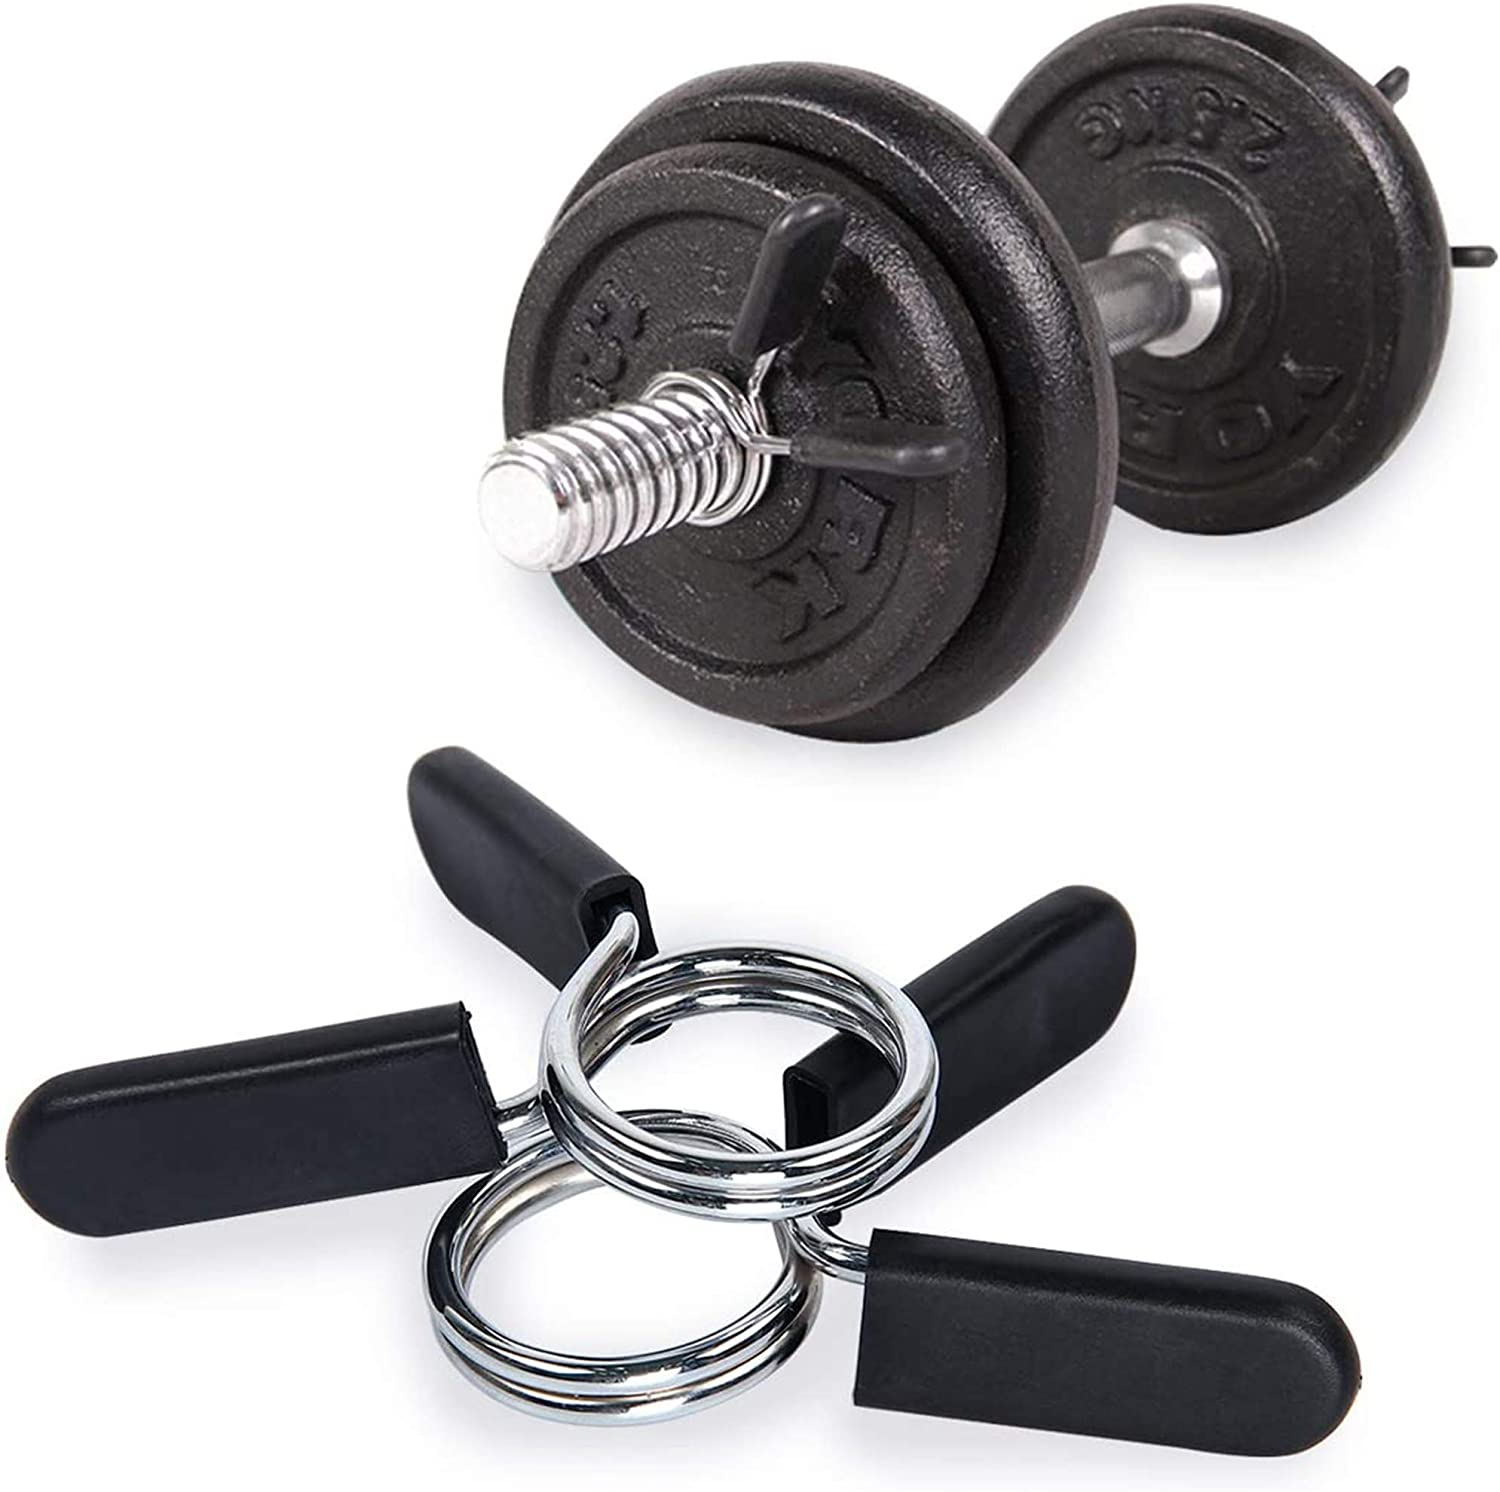 Xkfgcm 4 Pieces Barbell Dumbbell Barbell Spring Clip Collars Exercise Collars Dumbbell Clamps and Barbell Clamps Non-Slip Barbell Clamp Collars Barbell Clip Lock Collar For 28mm//1.1 inch Diameter Bars